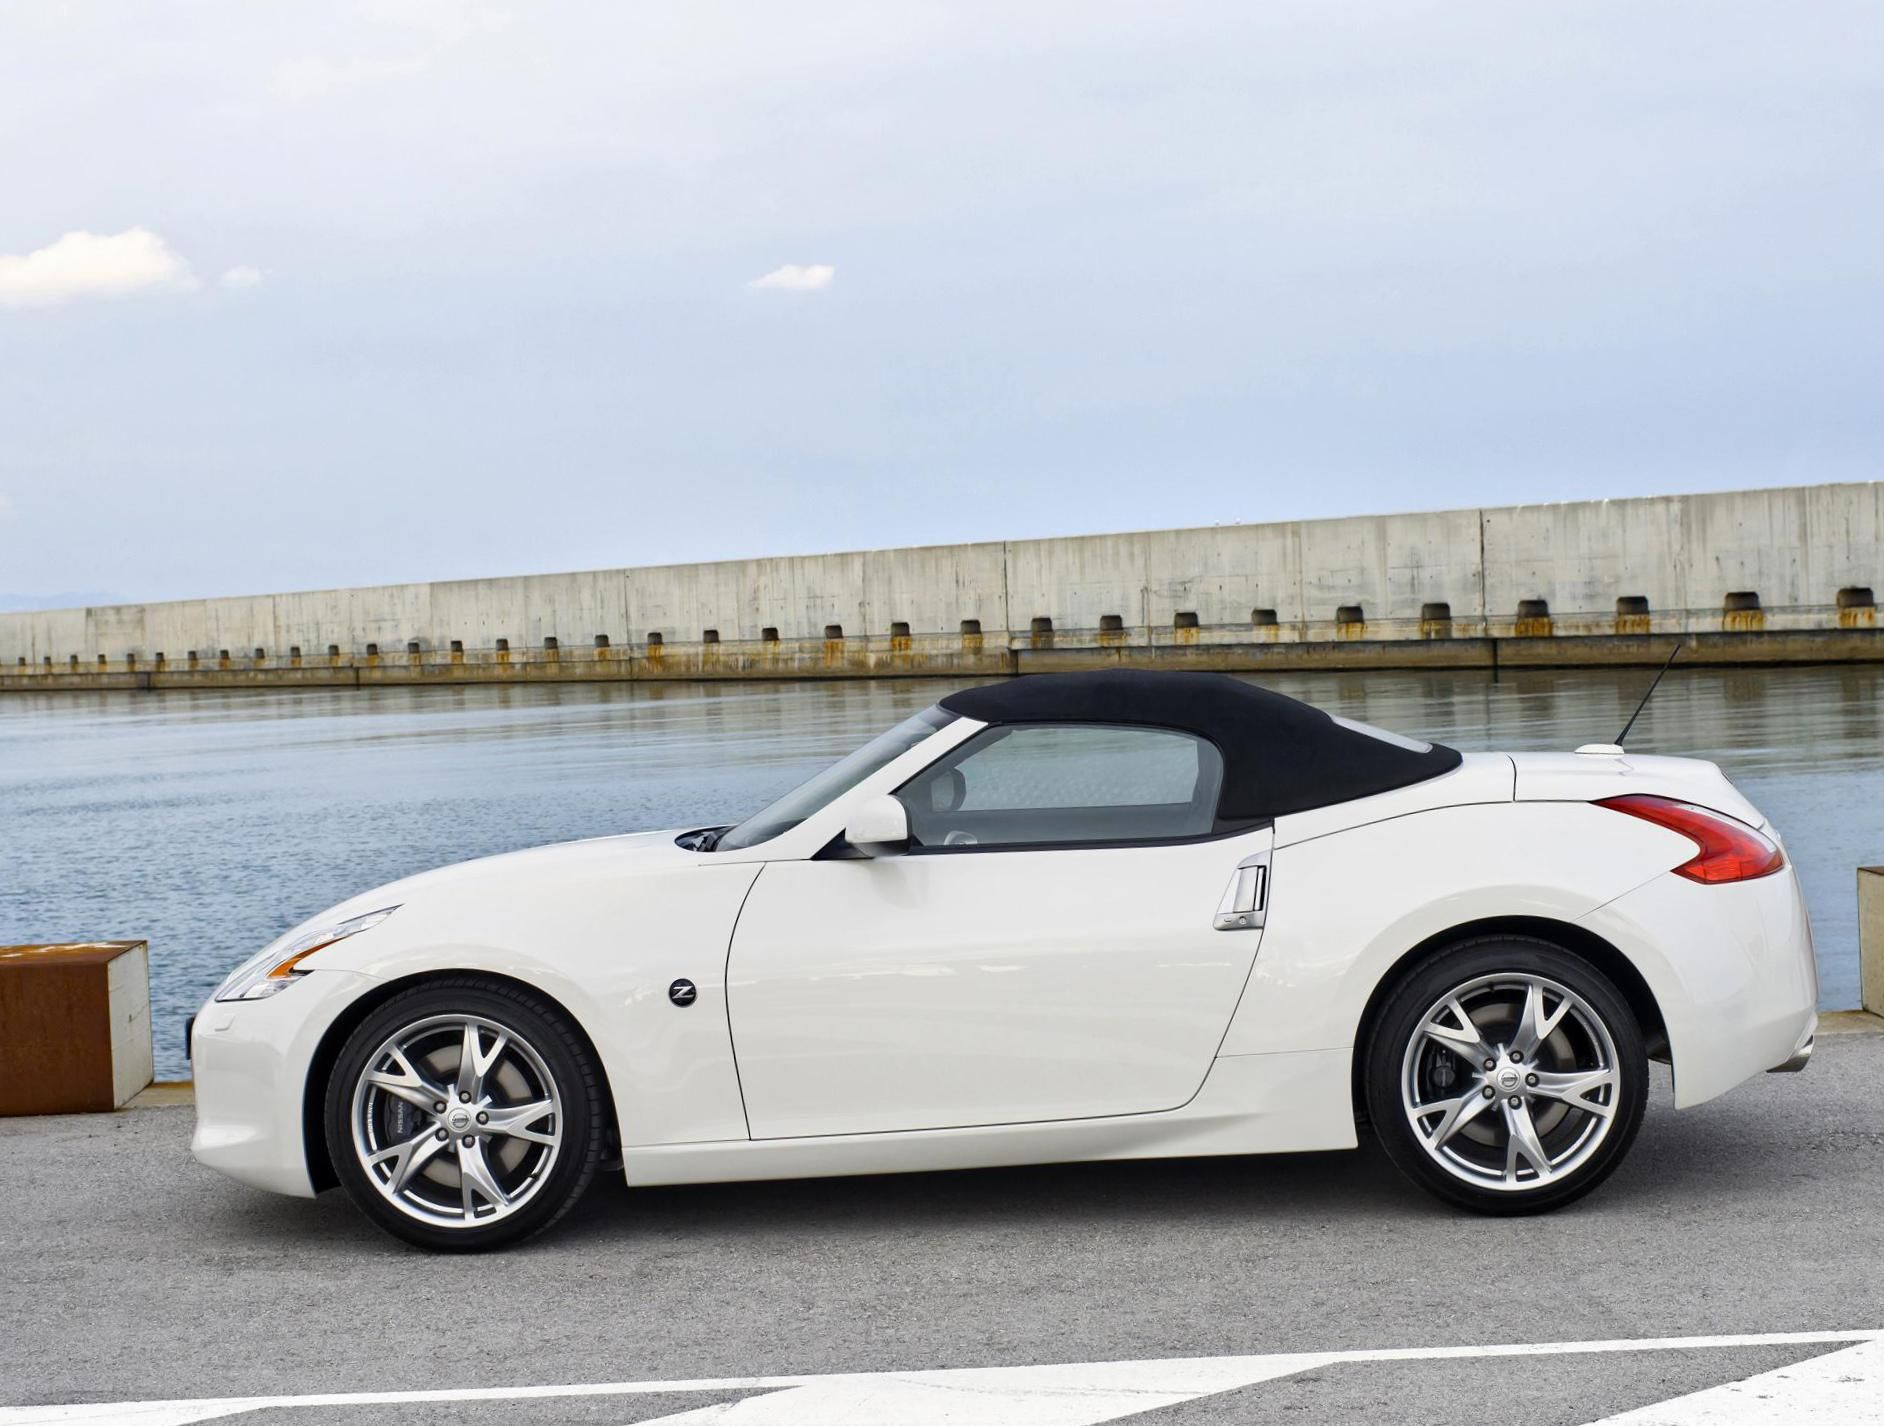 Nissan 370z Roadster Photos And Specs Photo 370z Roadster Nissan Specification And 24 Perfect Photos Of Nissan 370 Nissan 370z Nissan 370z Convertible Nissan